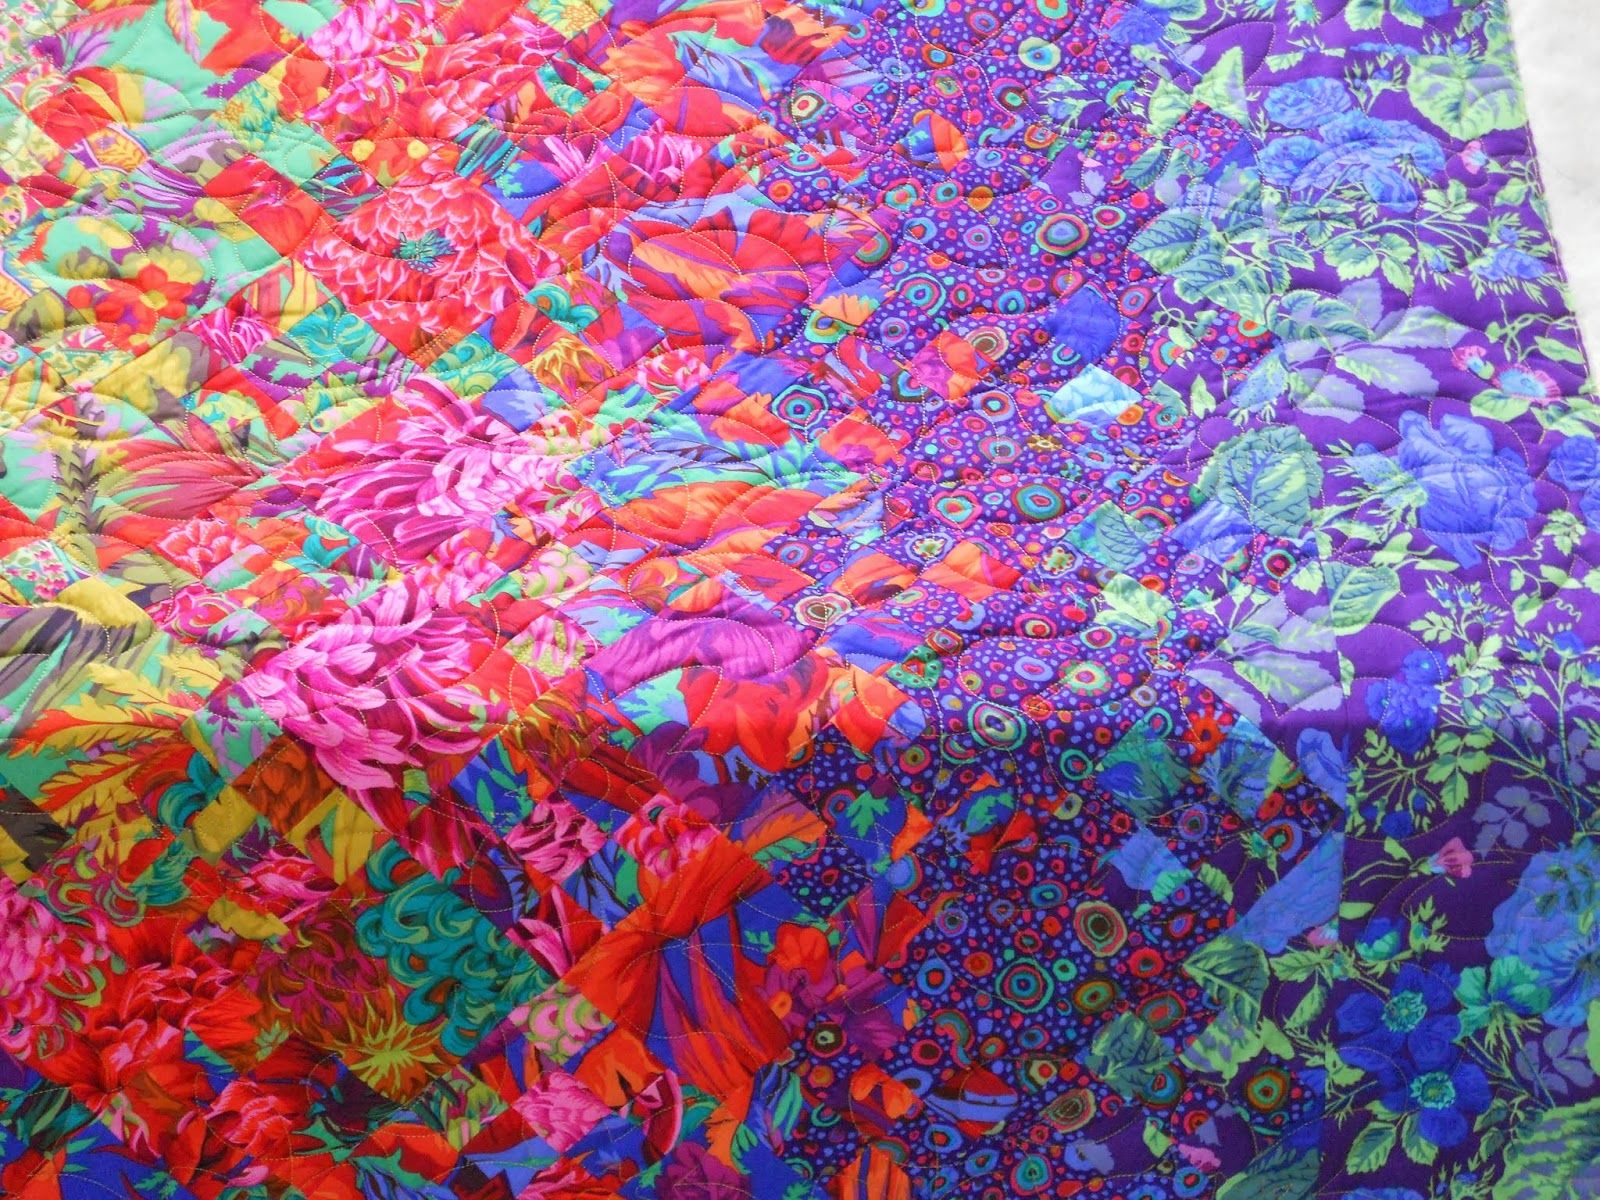 colorful quilts - Google zoeken